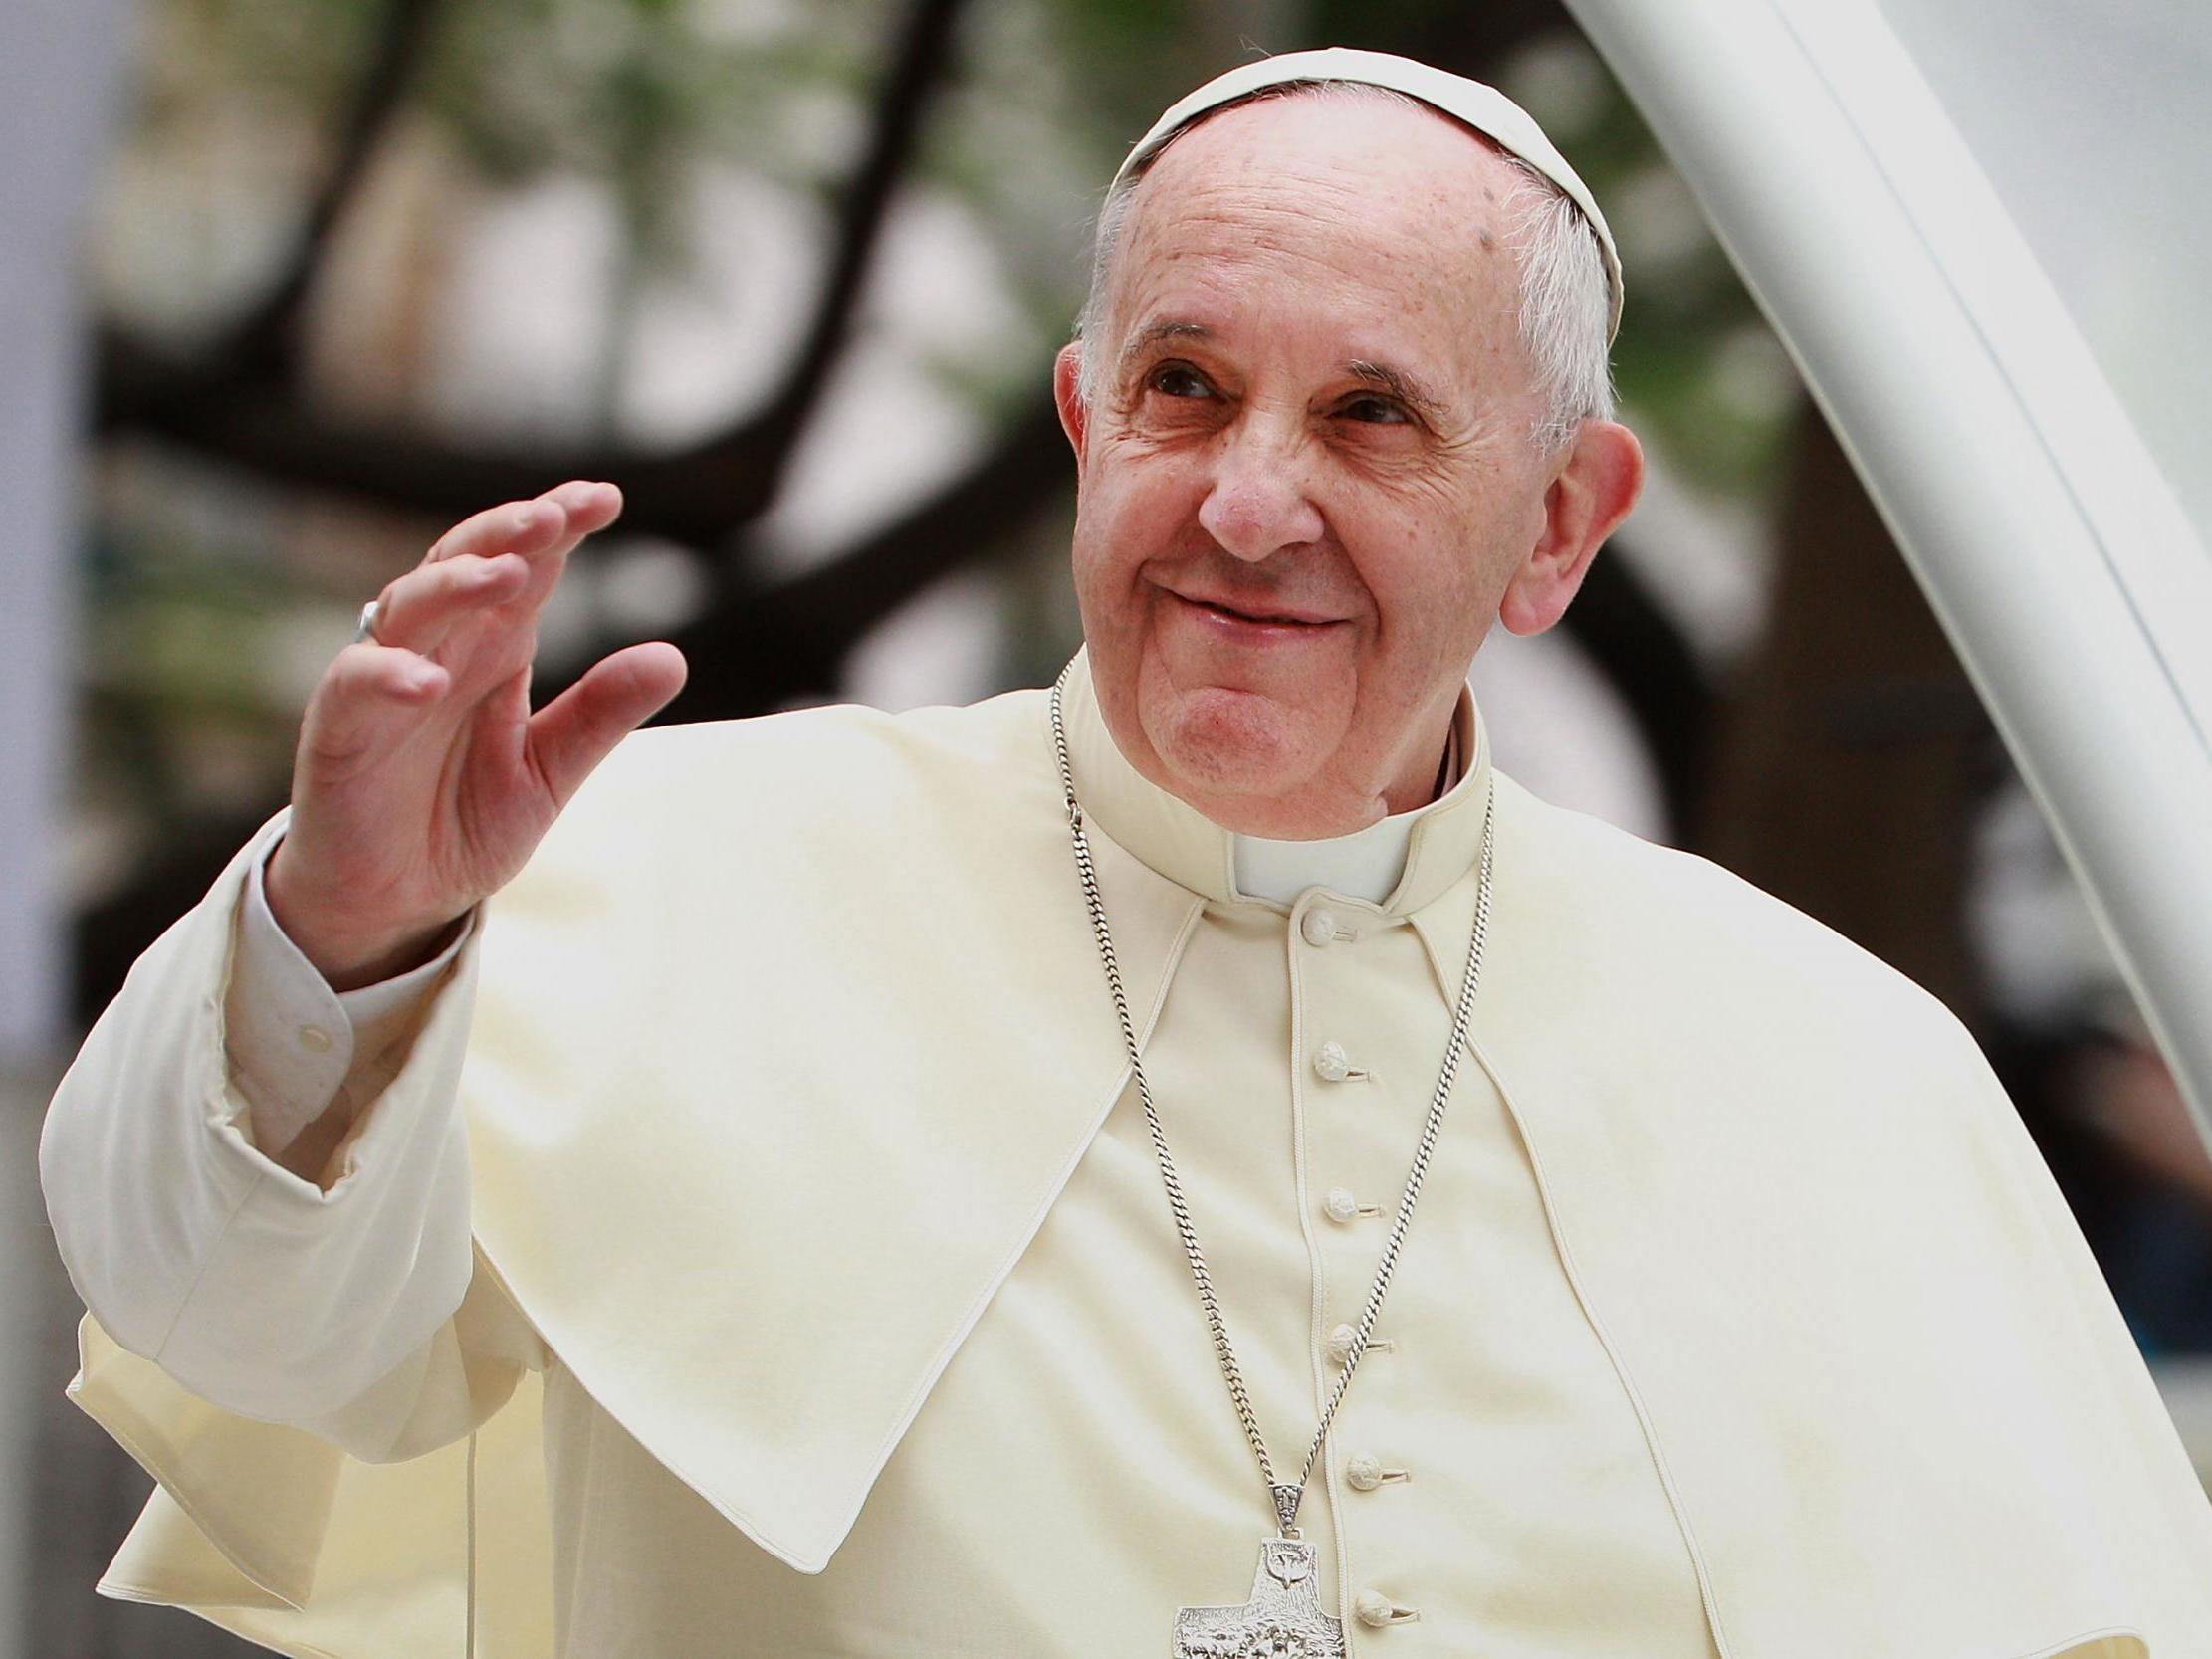 Pope urges hugs, phone calls to fight off isolation